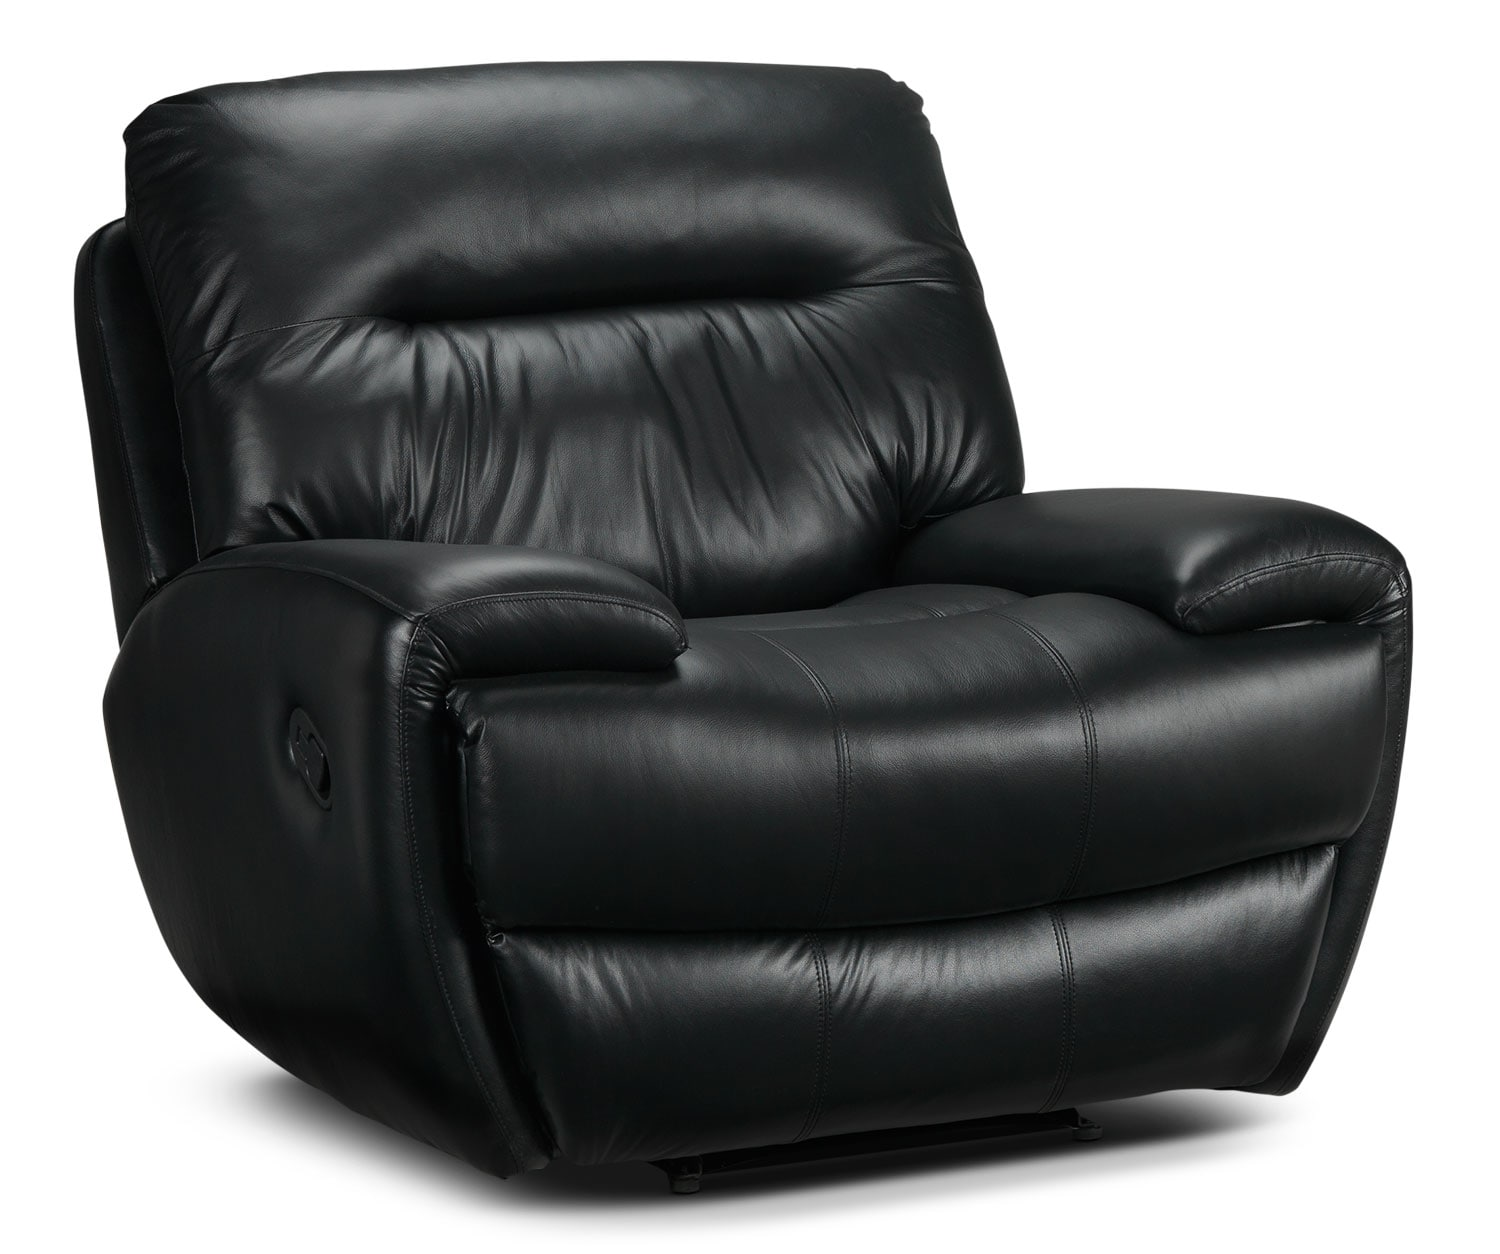 [Baily Recliner]